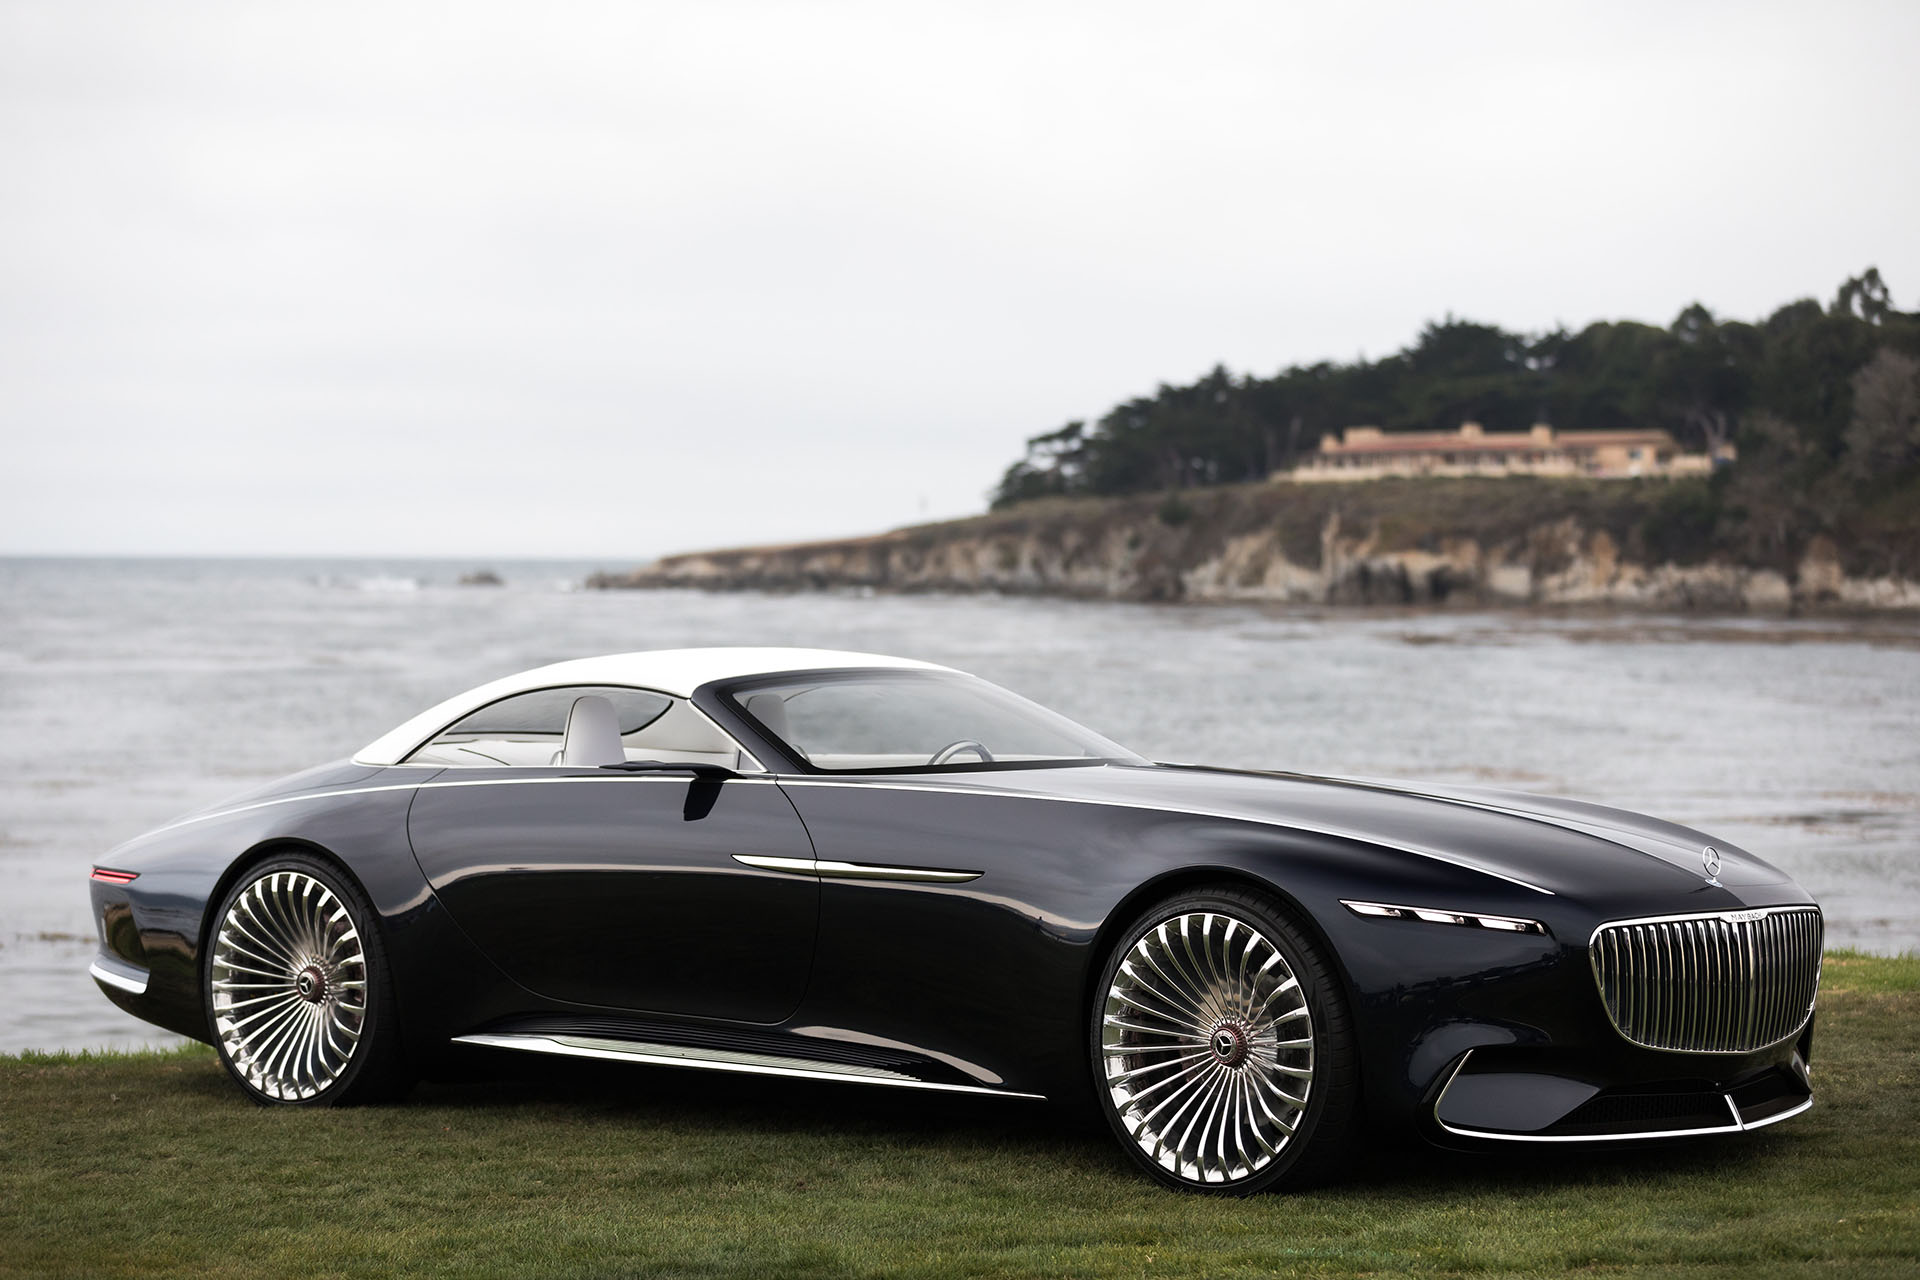 Concours D Elegance >> 2017 Monterey: The Vision Mercedes-Maybach 6 Cabriolet previews the future in opulent, open-top ...